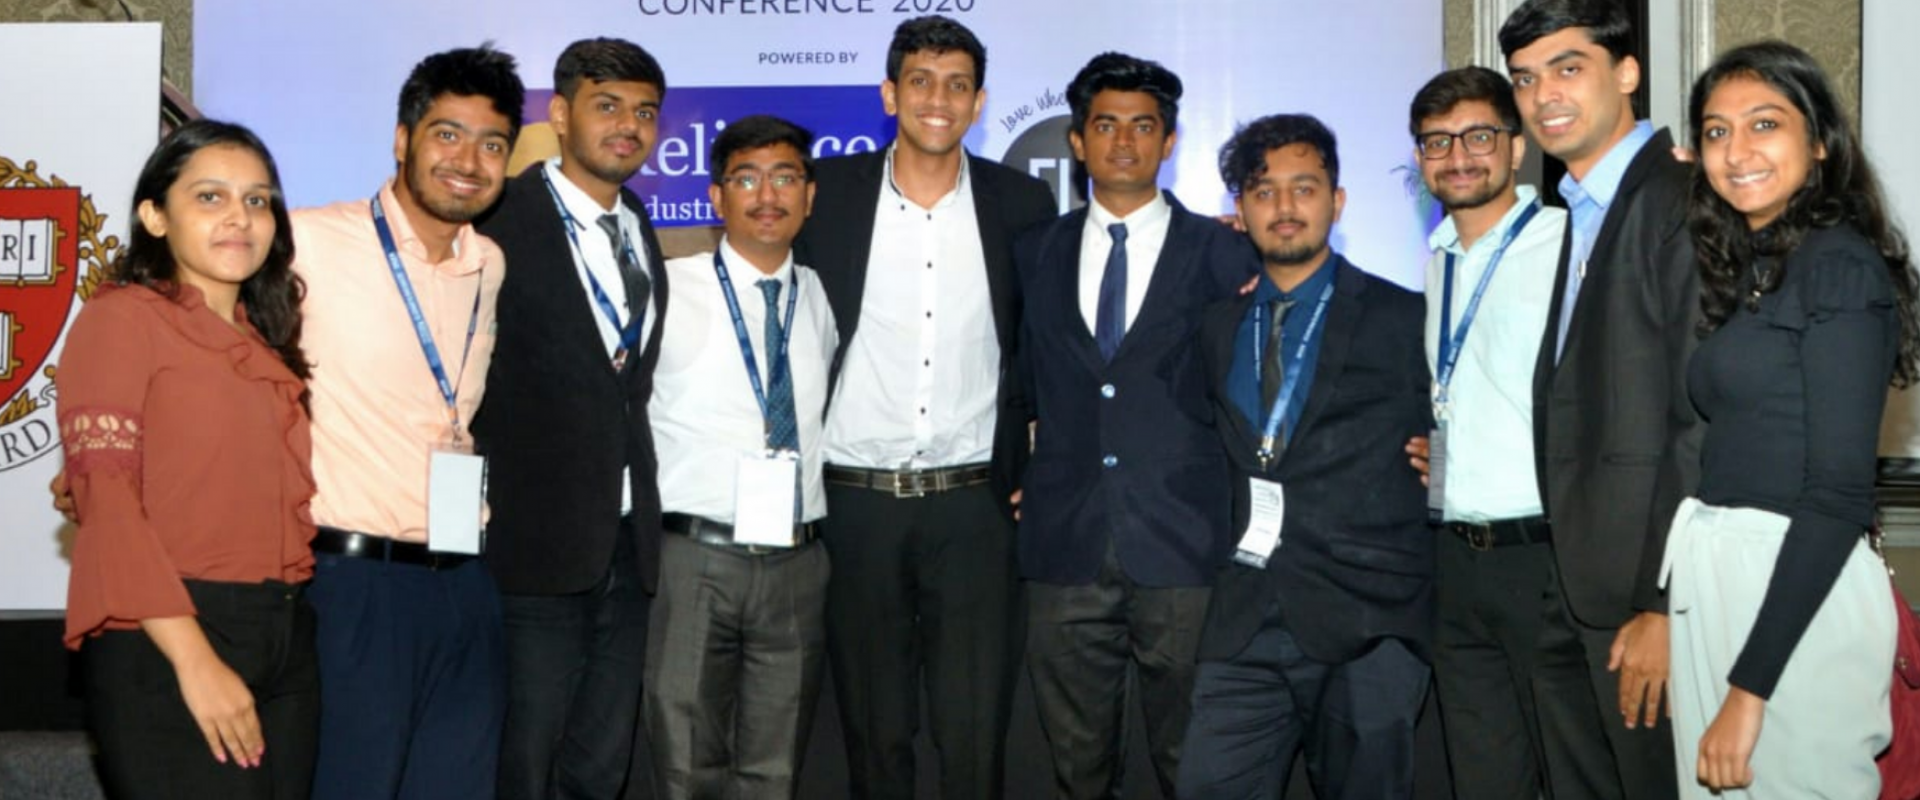 The RFS Contingent at the HUII Conference: from left to right: Arisha Chamadia, Aizaz Dosani, Ali Charaniya, Rahim Panjwani, Saif Lakhani, Yasin Lalani, Tanzim Thobani, Sahil Kadiwar, Nizar Mesani and Ashna Dawoodani